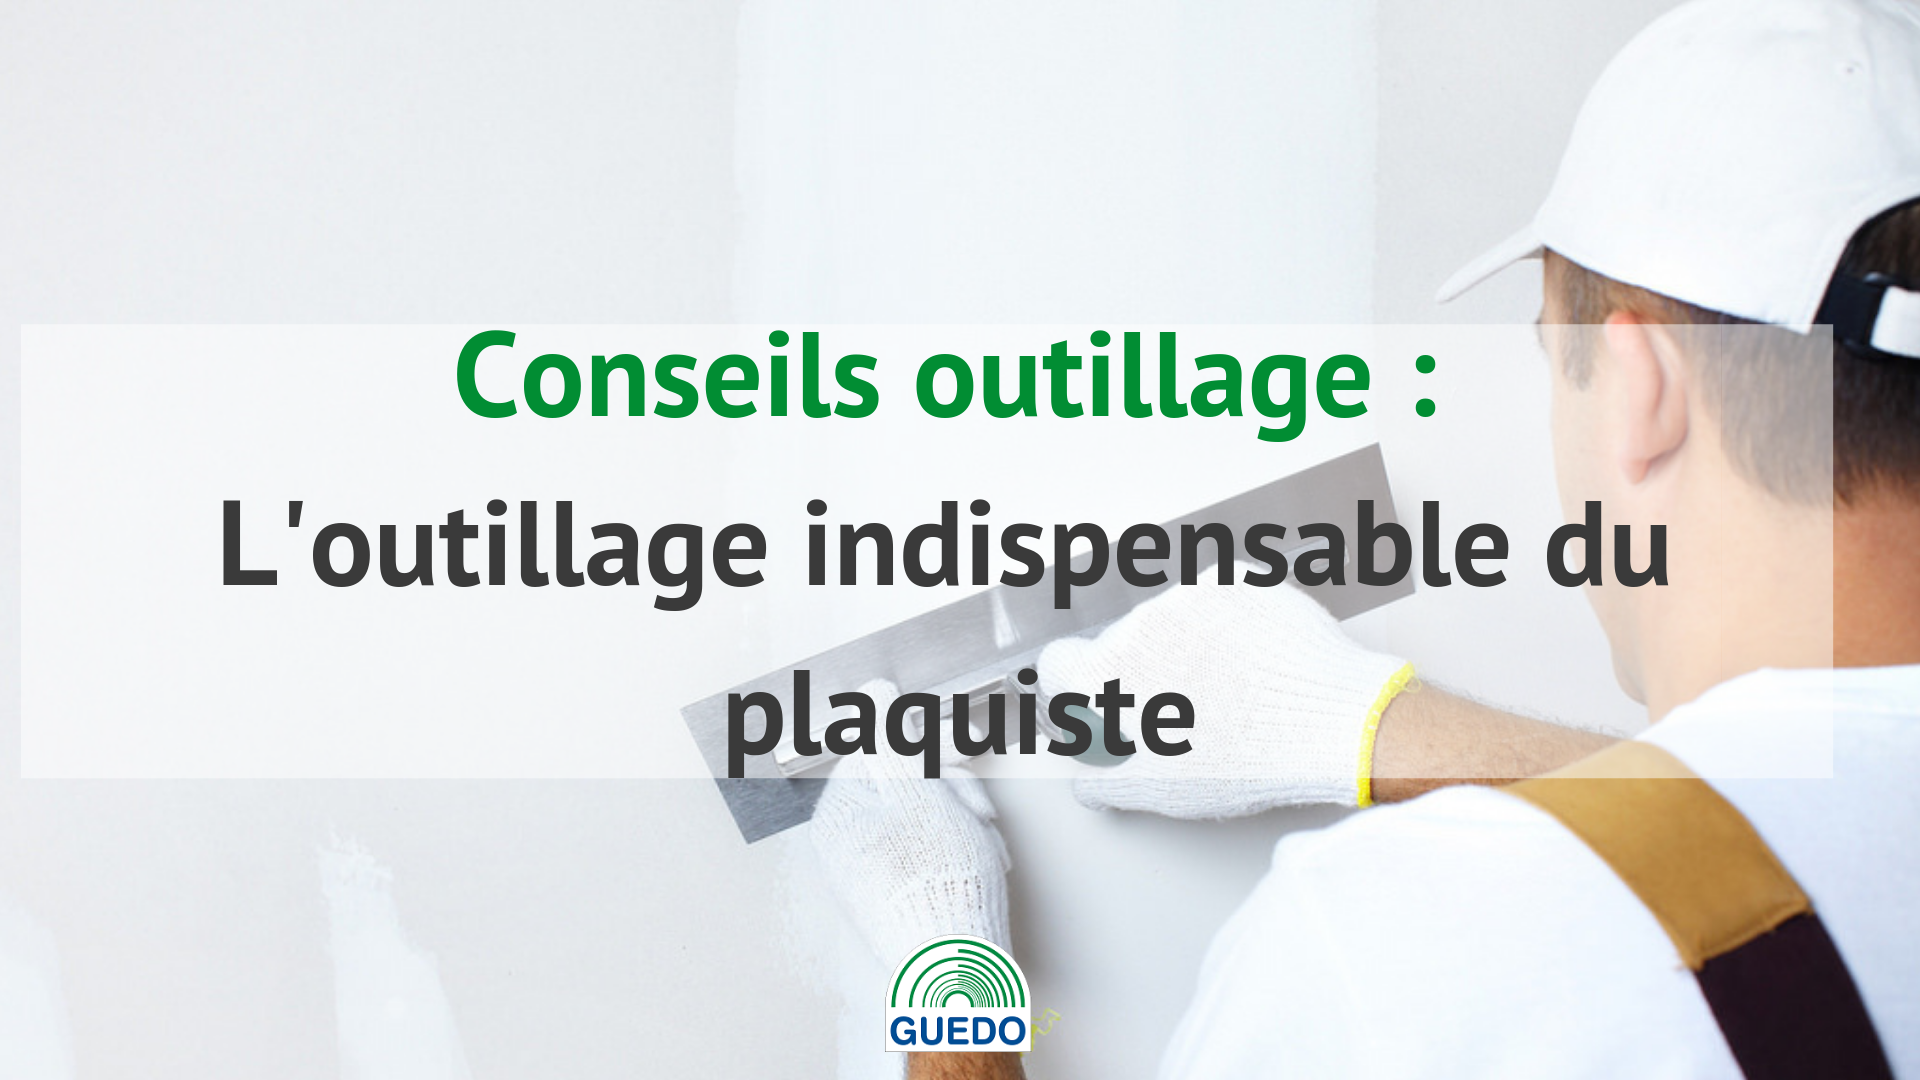 L'outillage indispensable du plaquiste